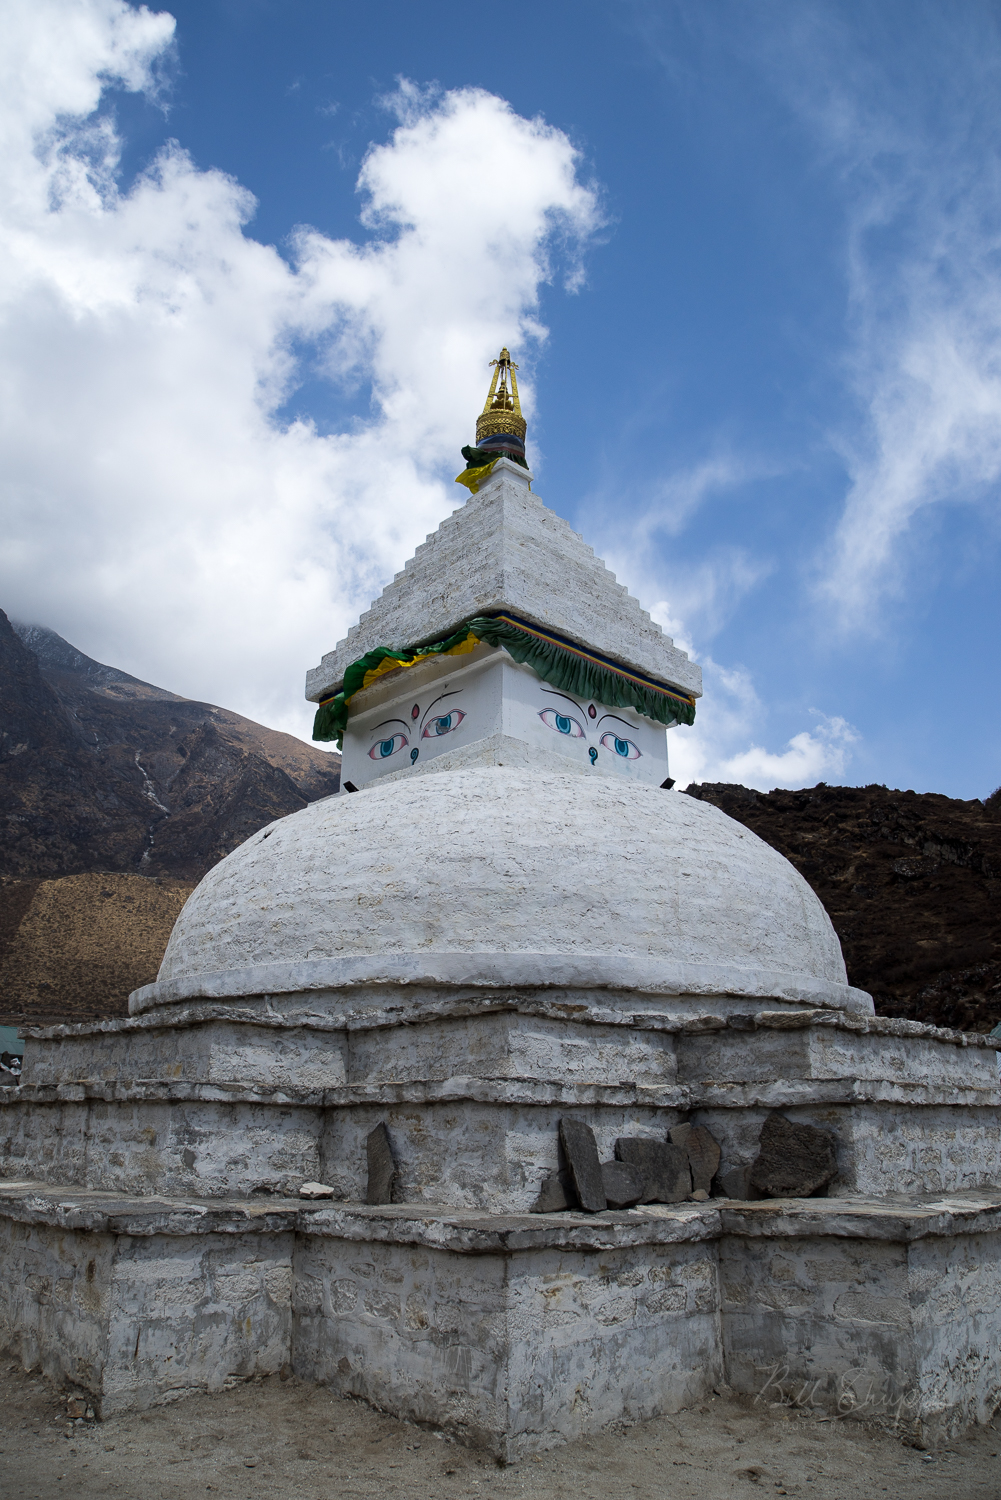 Stupa in Khumjung Village